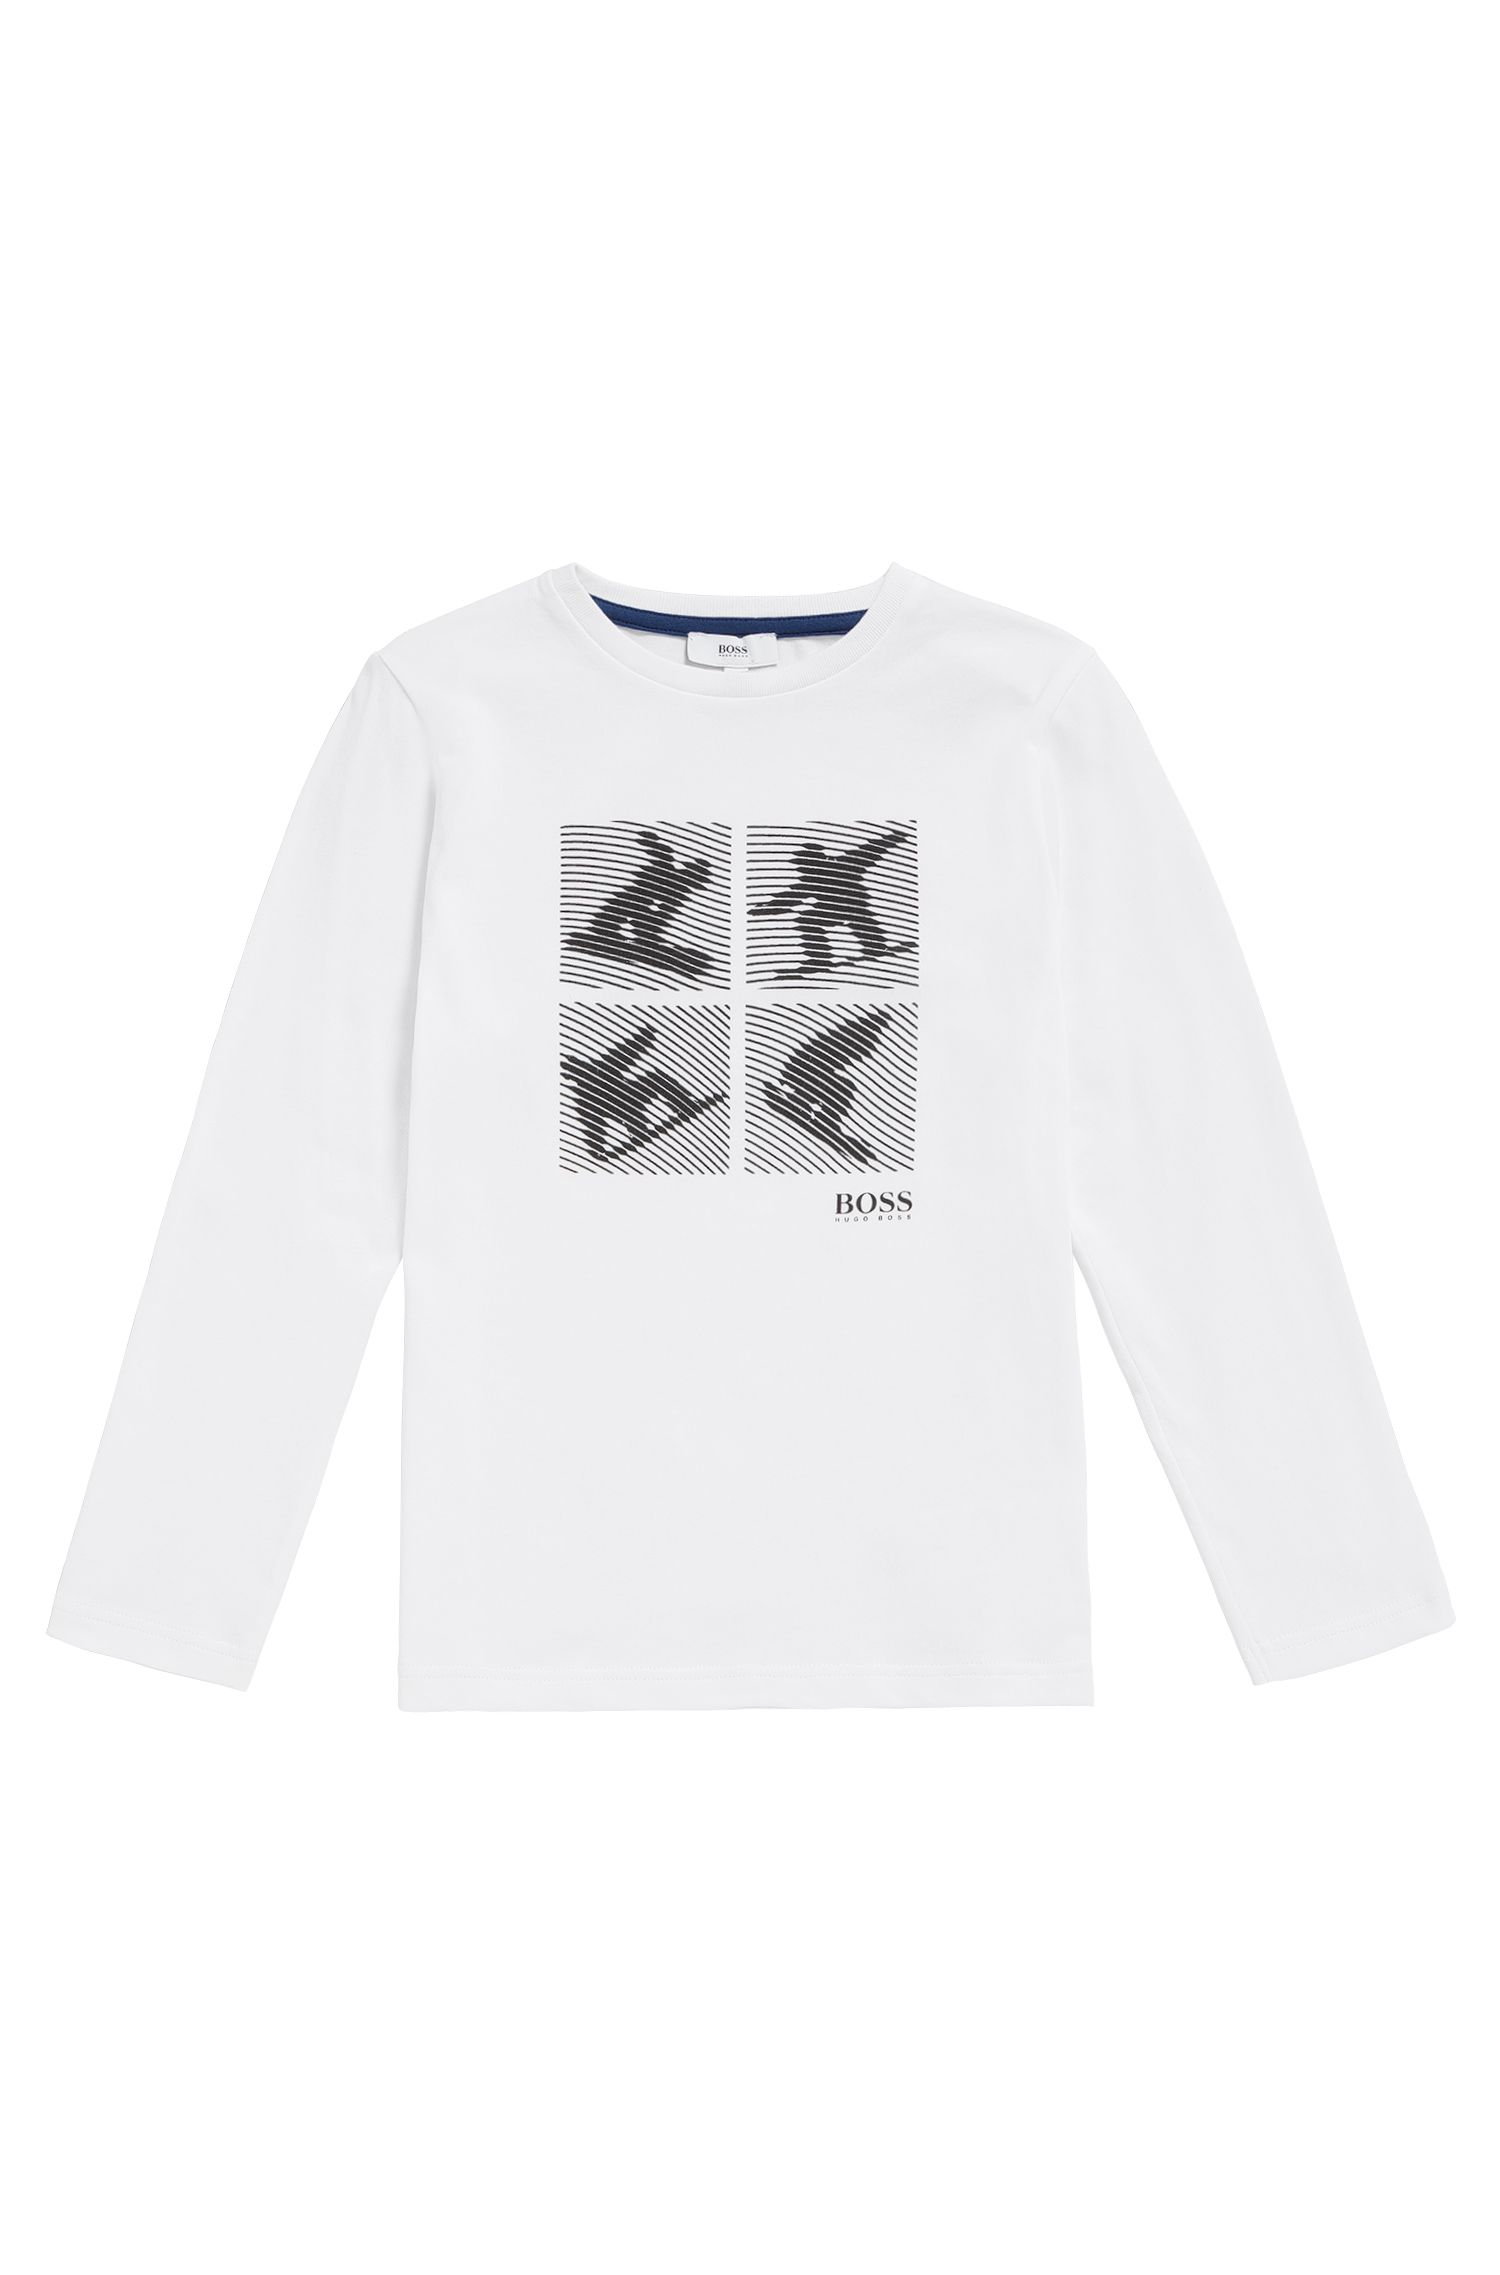 Kids' cotton t-shirt with surfer print: 'J25A35'